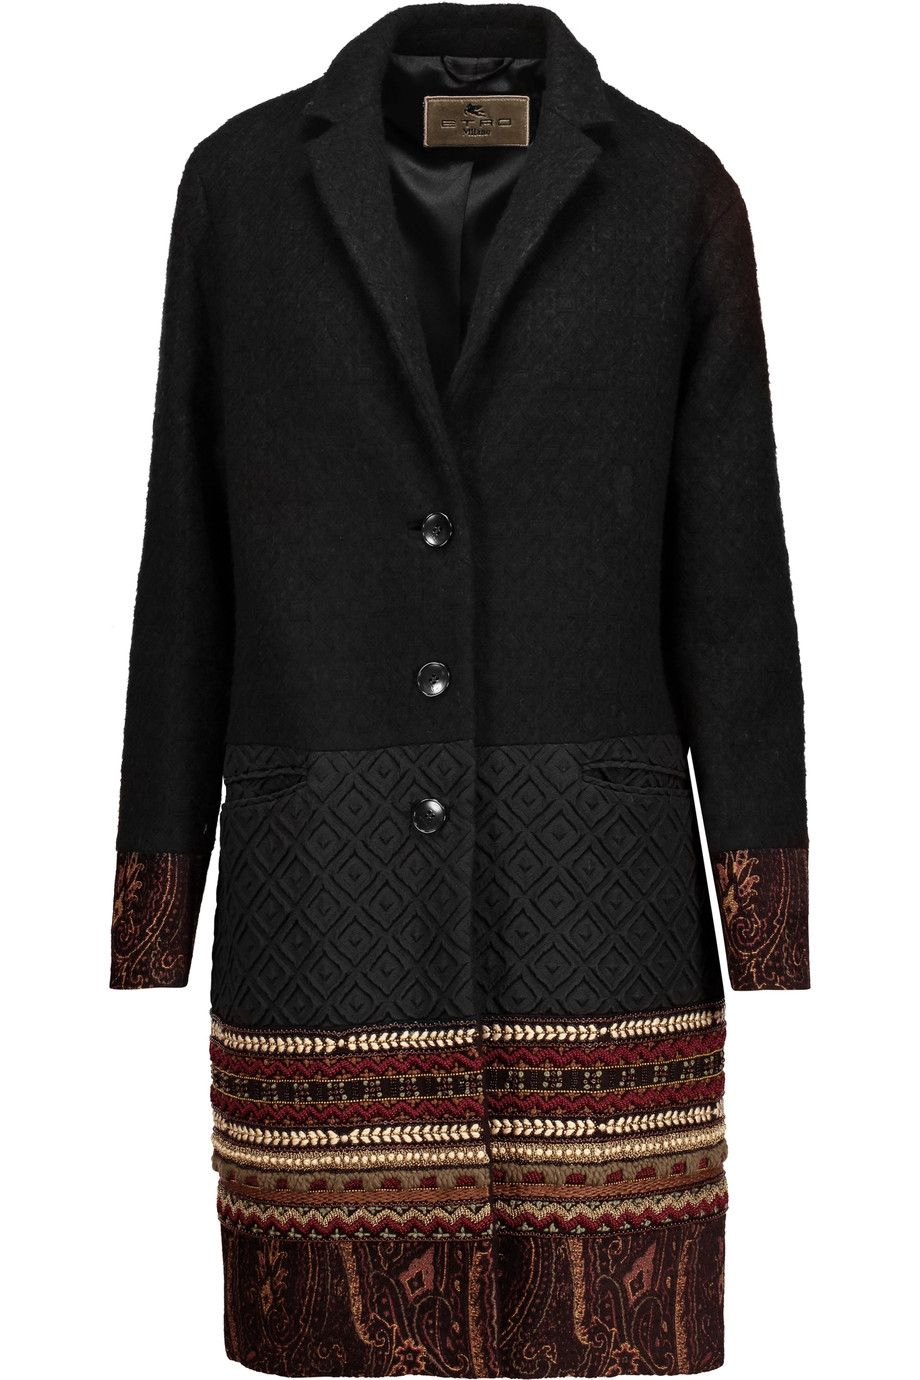 Shop on-sale Etro Embellished wool-blend jacquard and matelassé ...